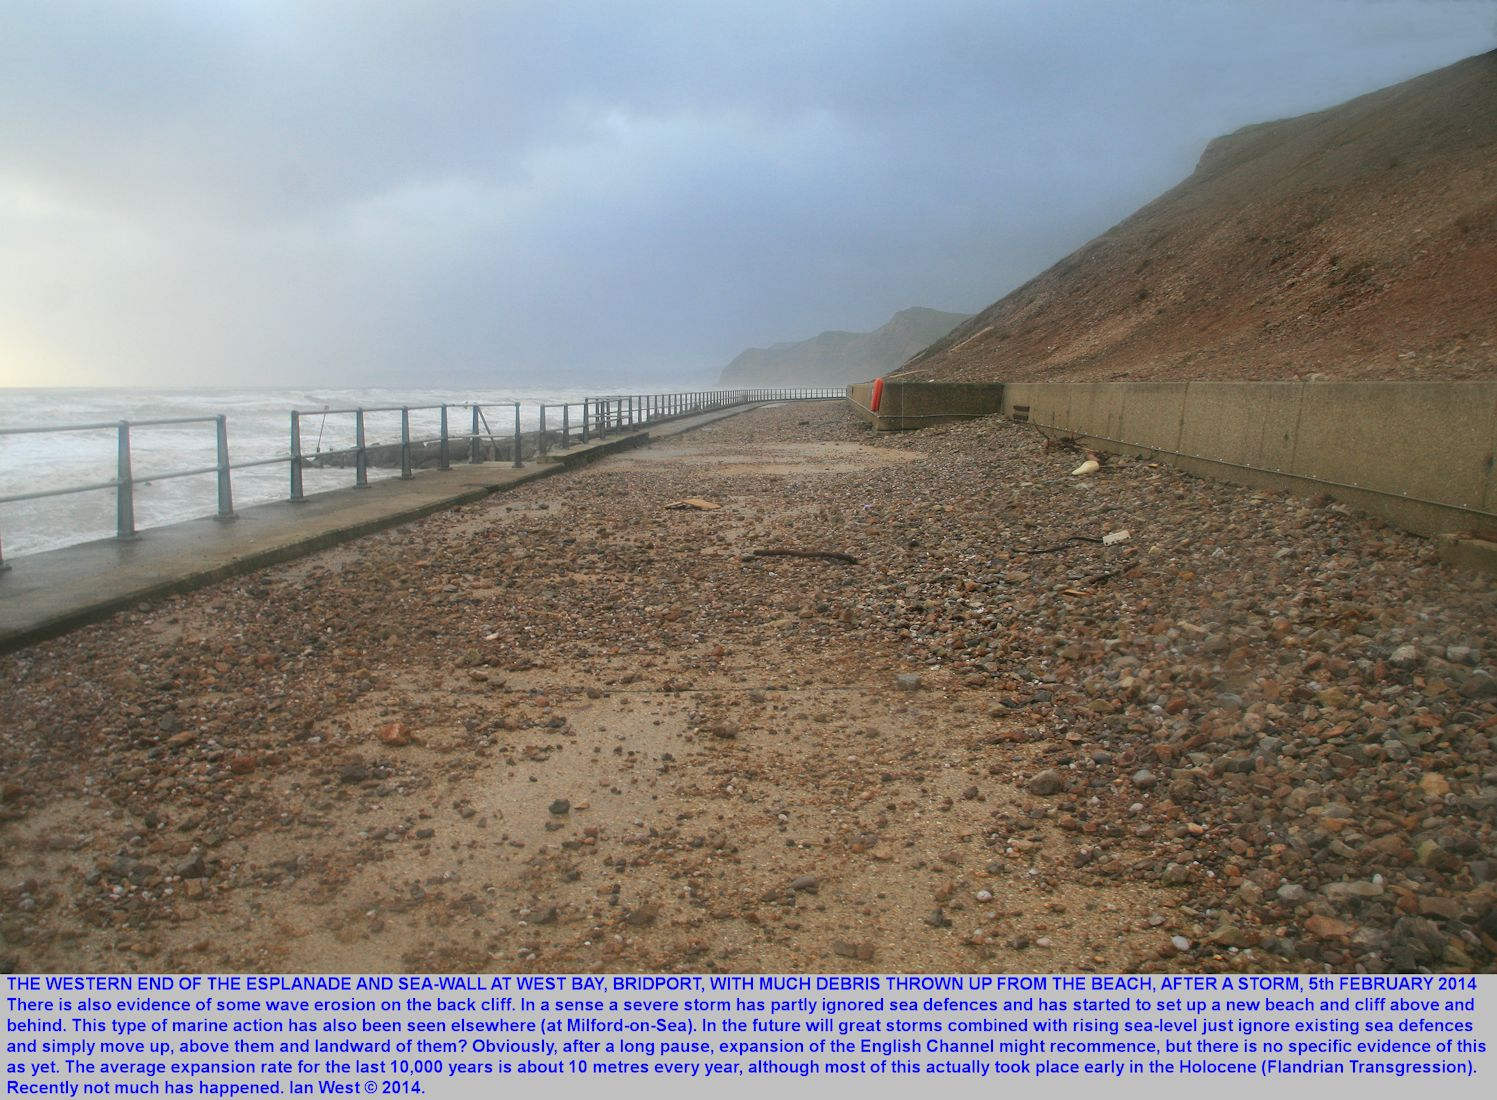 The far western end of the Esplanade and sea wall, at West Bay, Bridport, Dorset, after the storm of the 5th February, 2014, with pebbles thrown up on the roadway